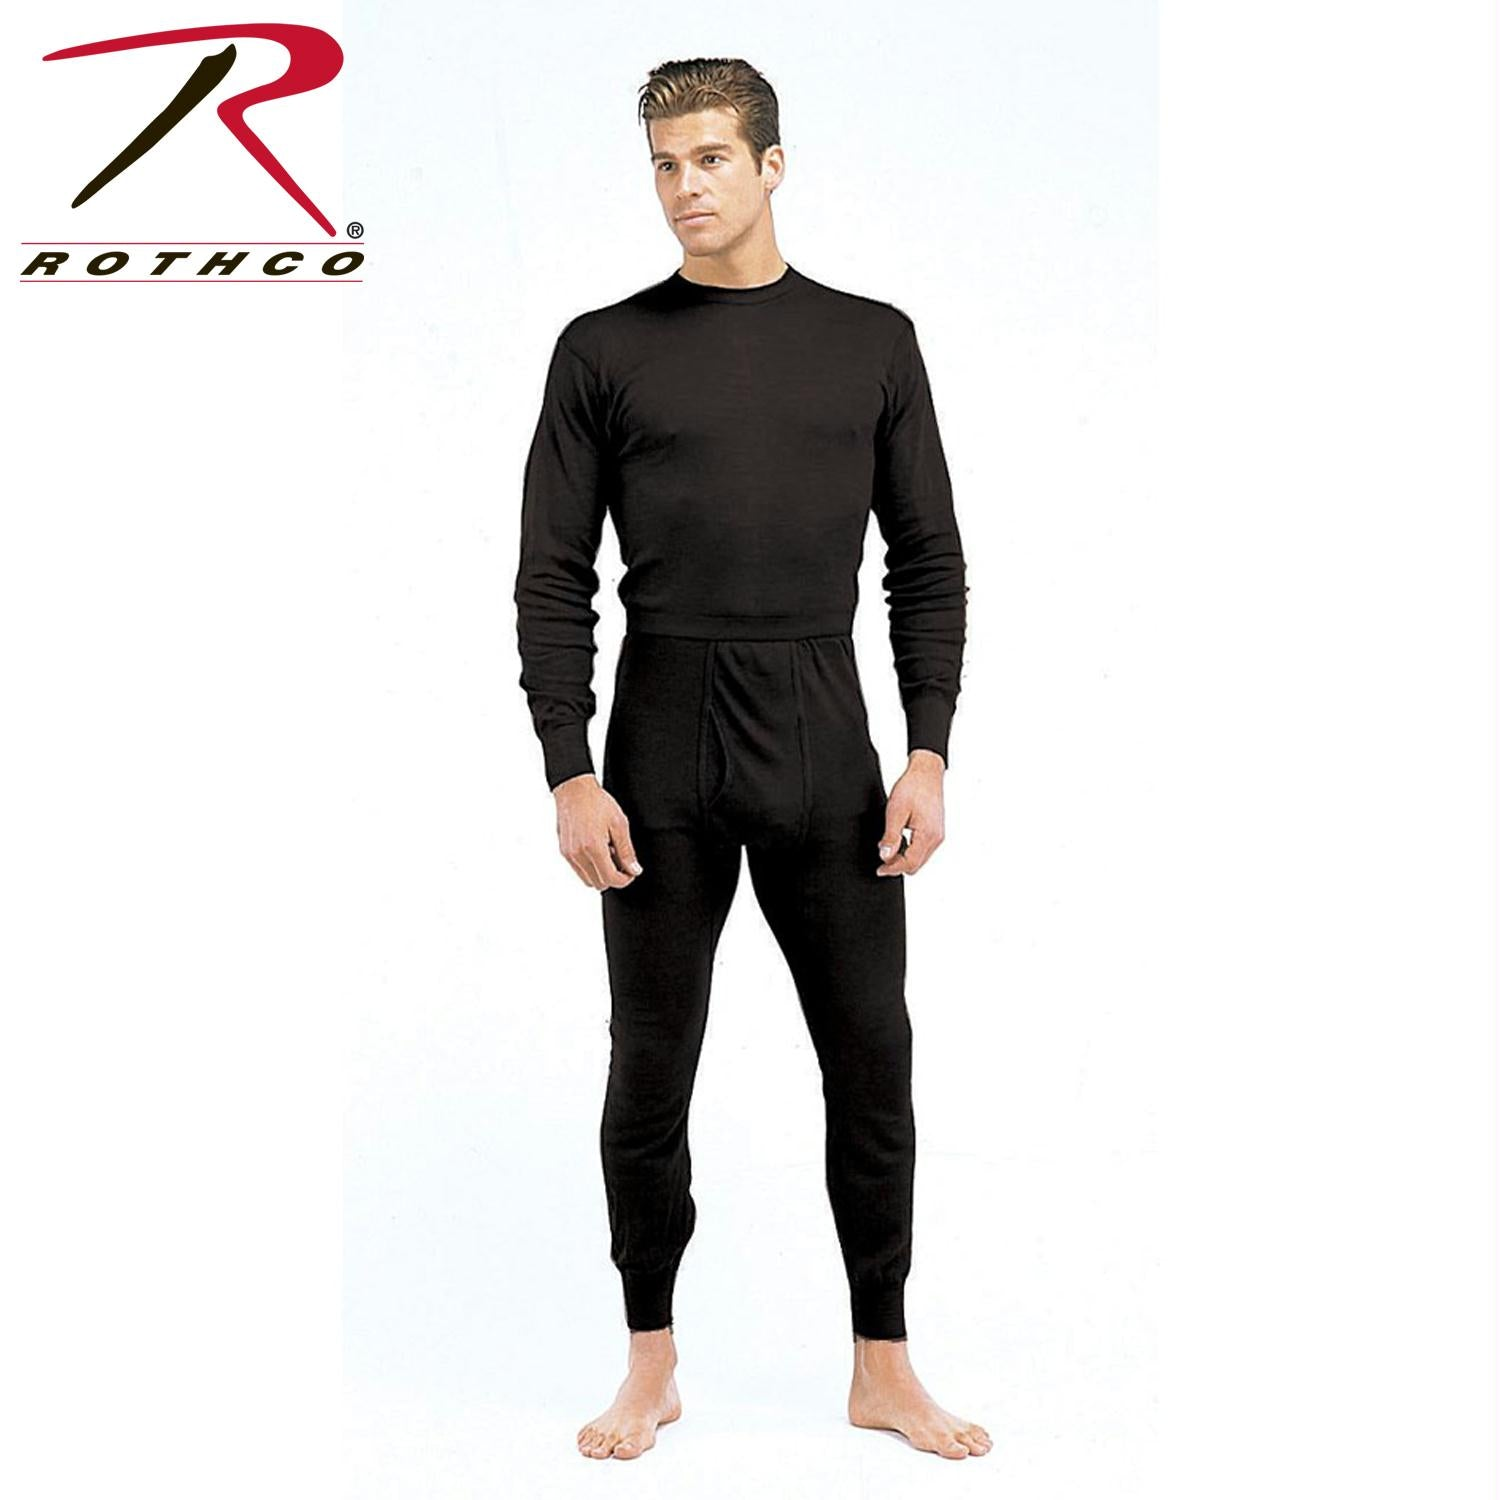 Rothco Single Layer Poly Underwear Tops - Black / L